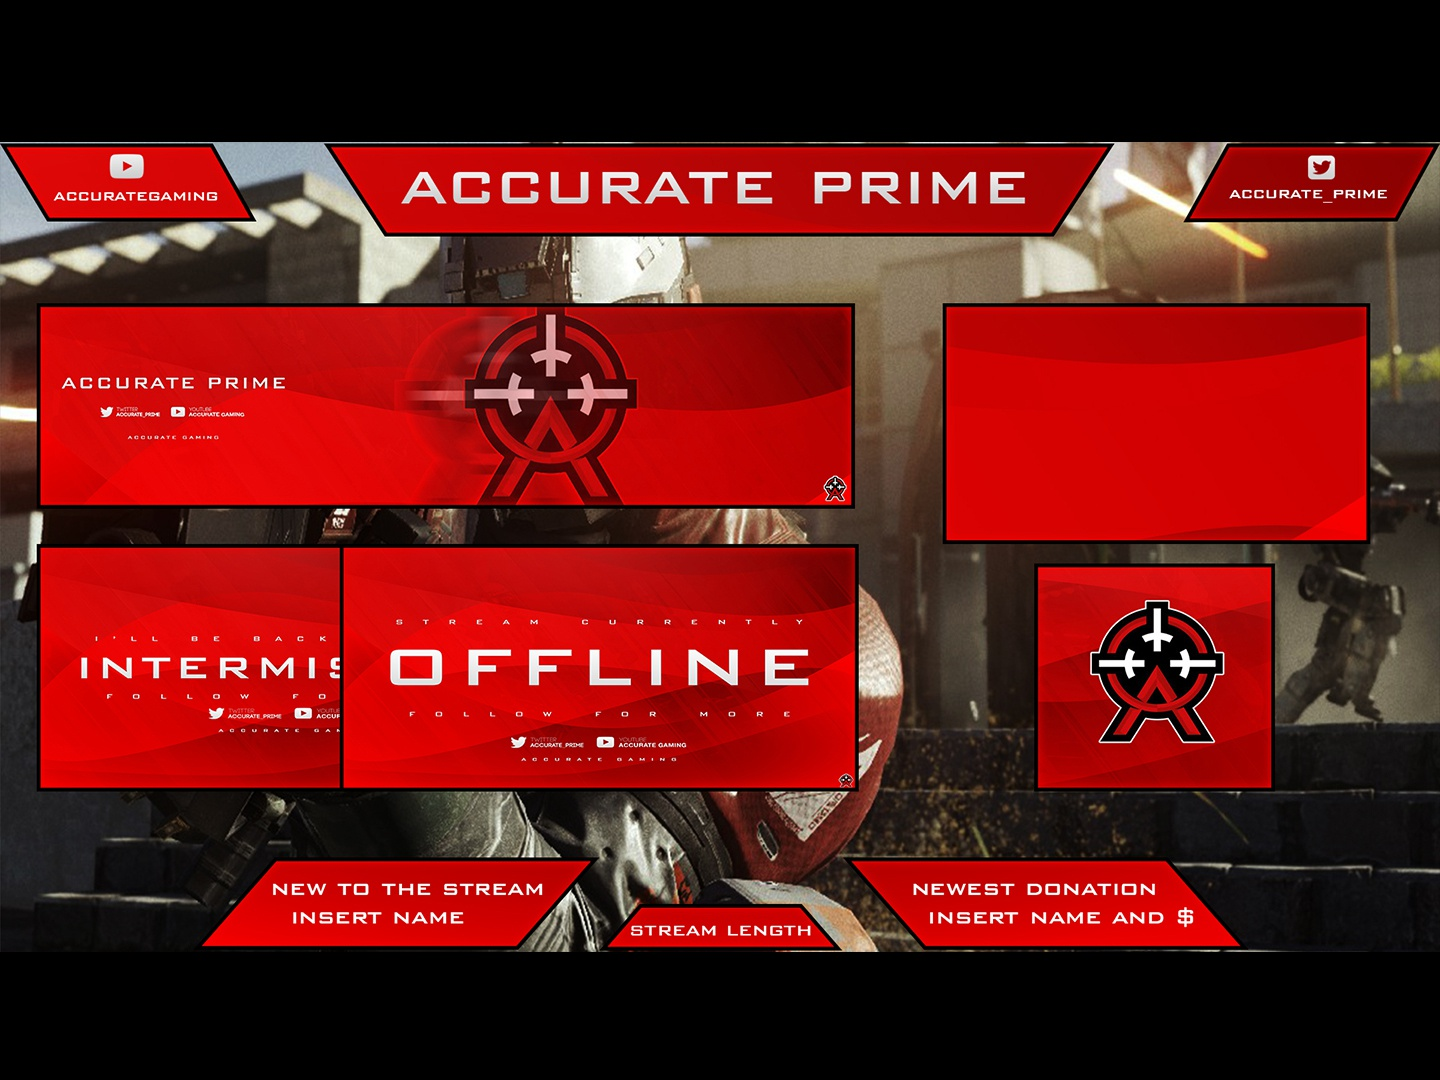 Accurate Prime Twitch Overlay Package by Ke'Moni Champion on Dribbble